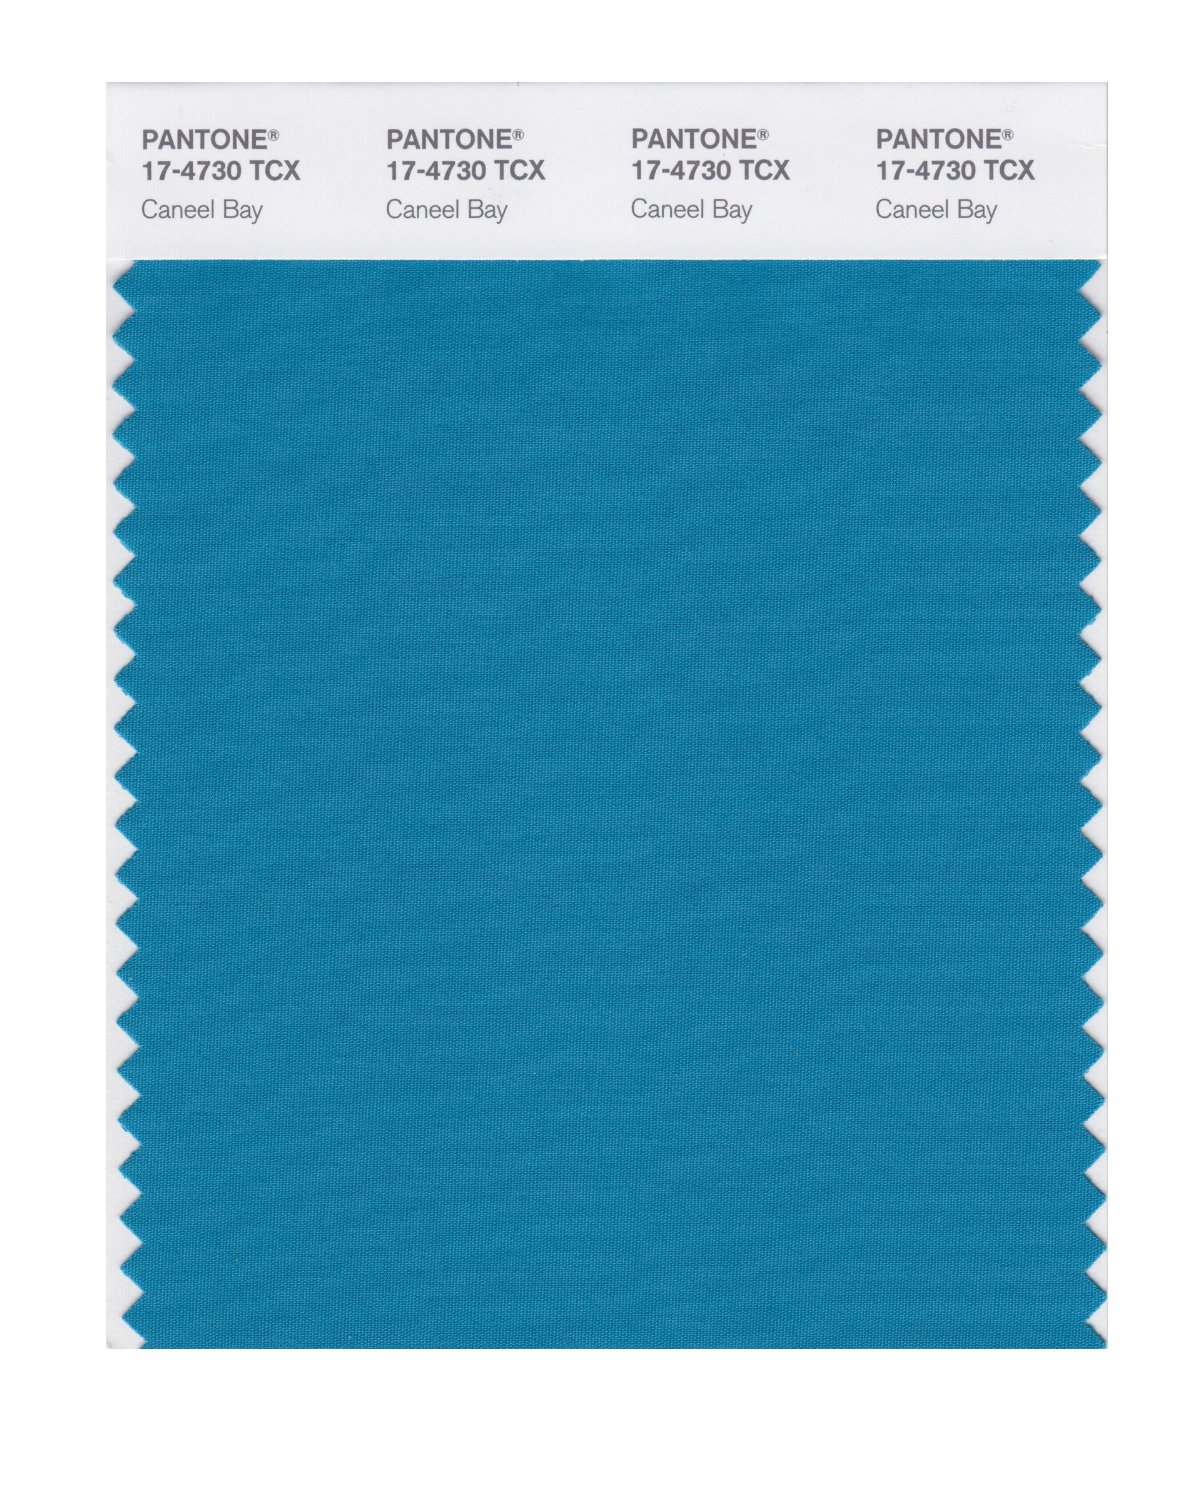 Pantone Smart Swatch 17-4730 Caneel Bay